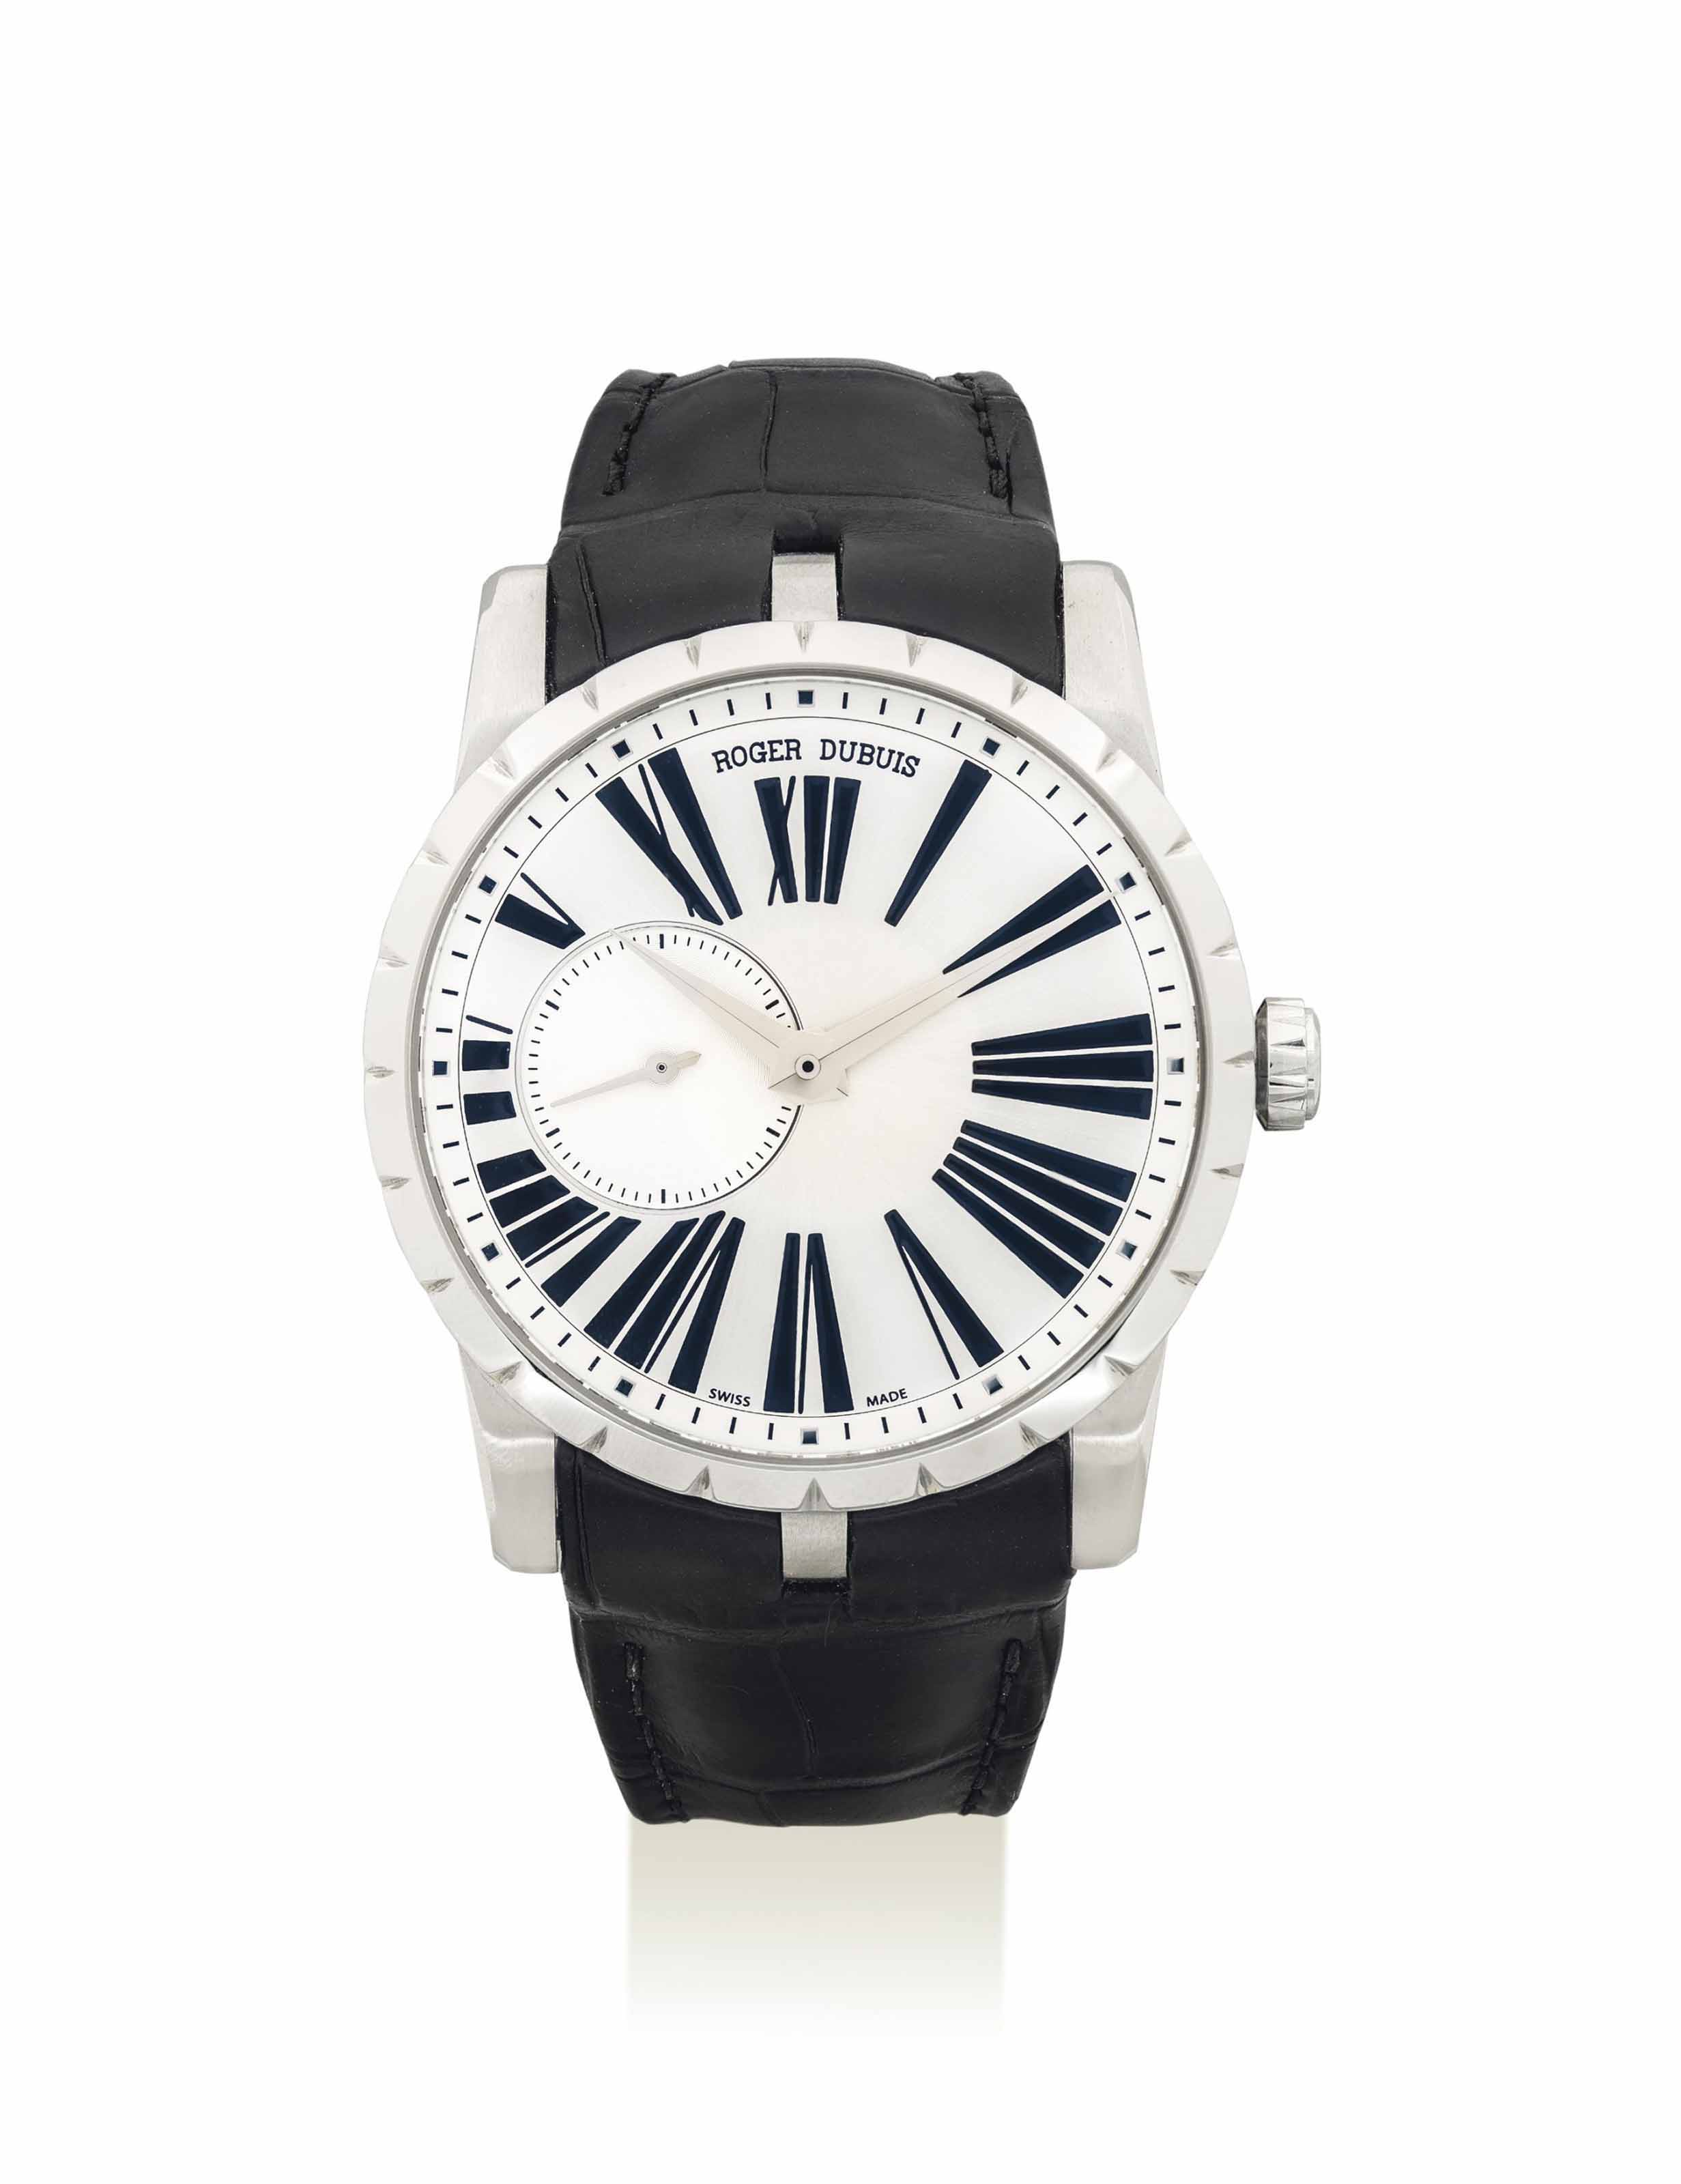 ROGER DUBUIS. A FINE STAINLESS